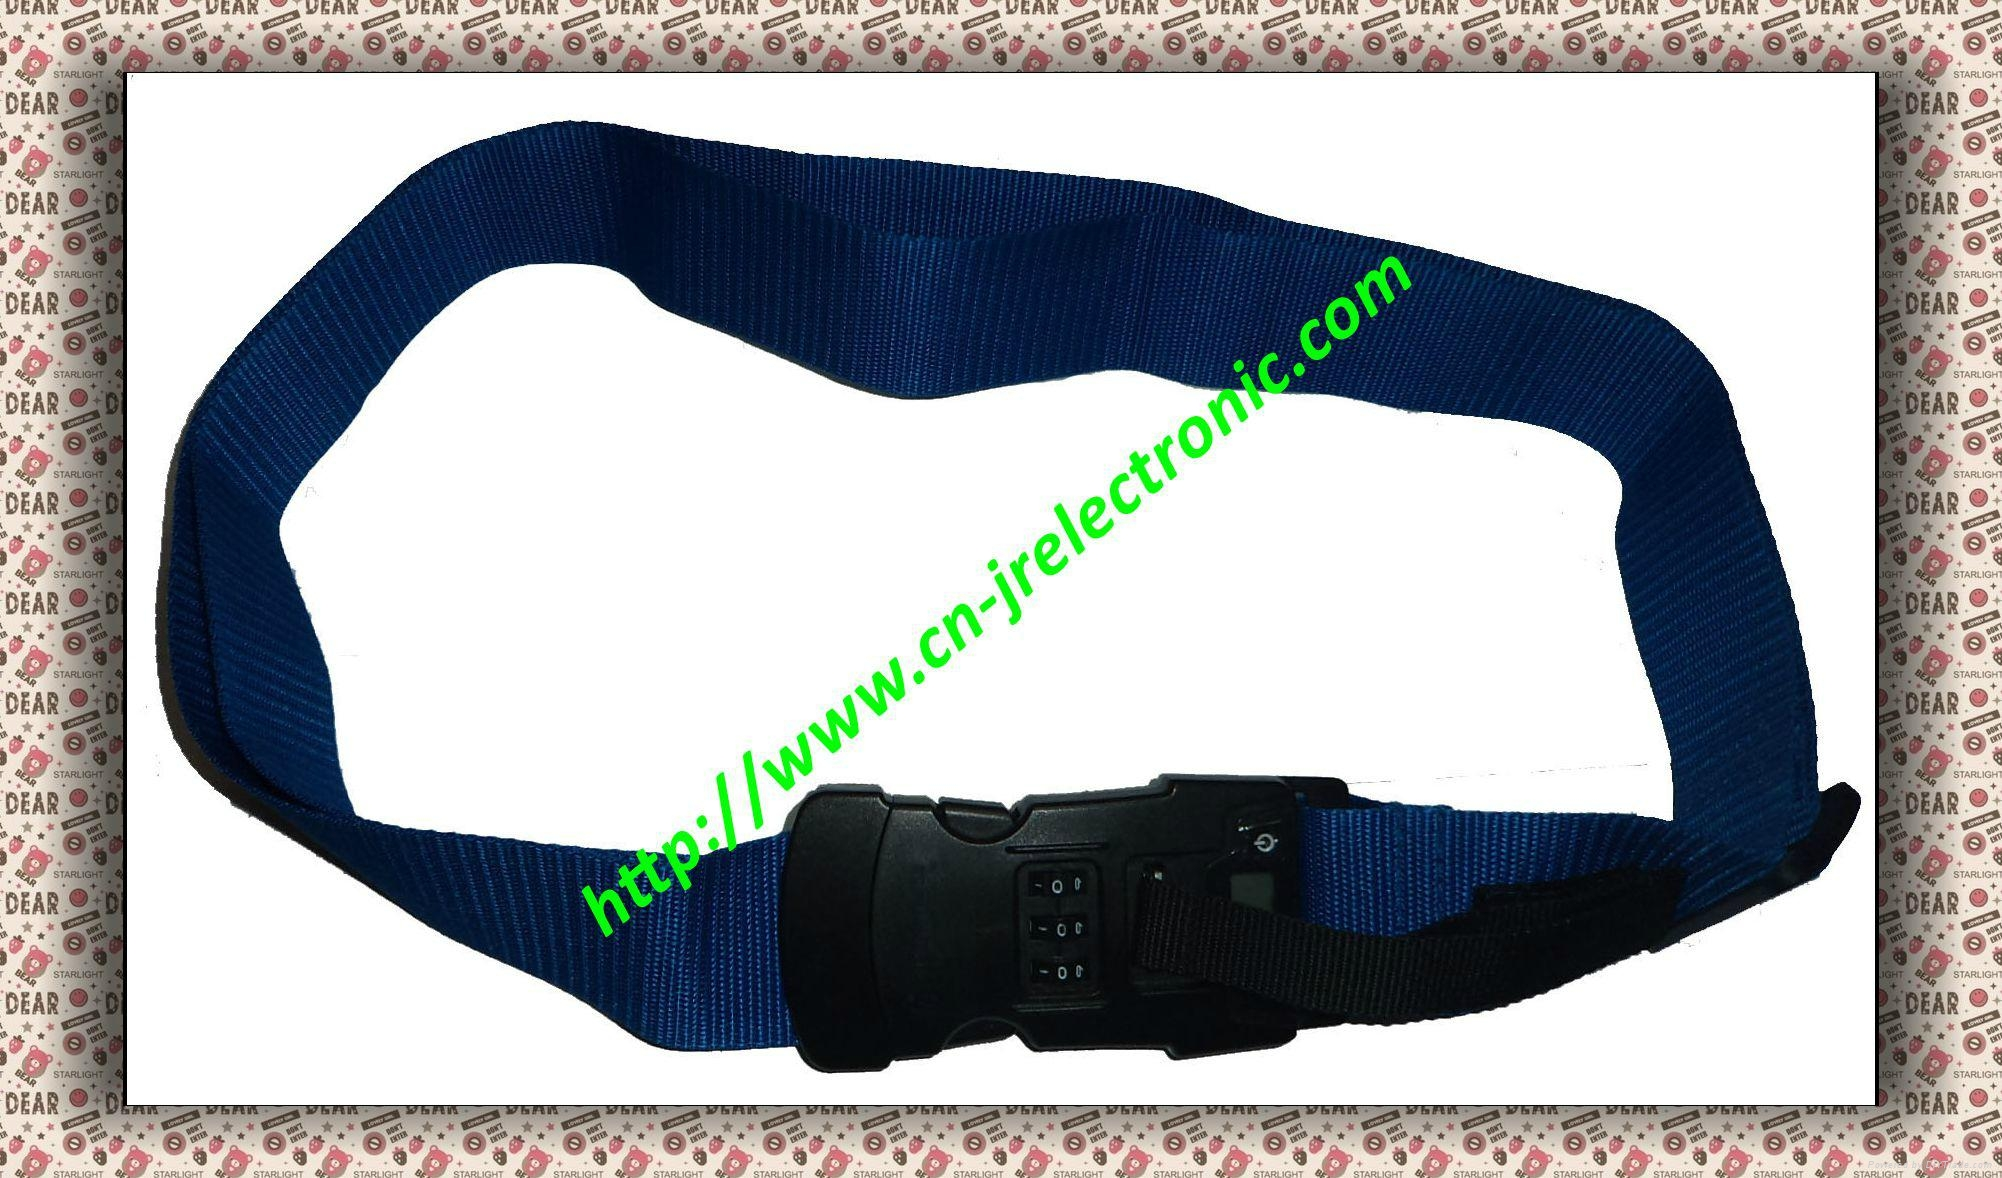 Luggage strap with combination lock and digital scale 2